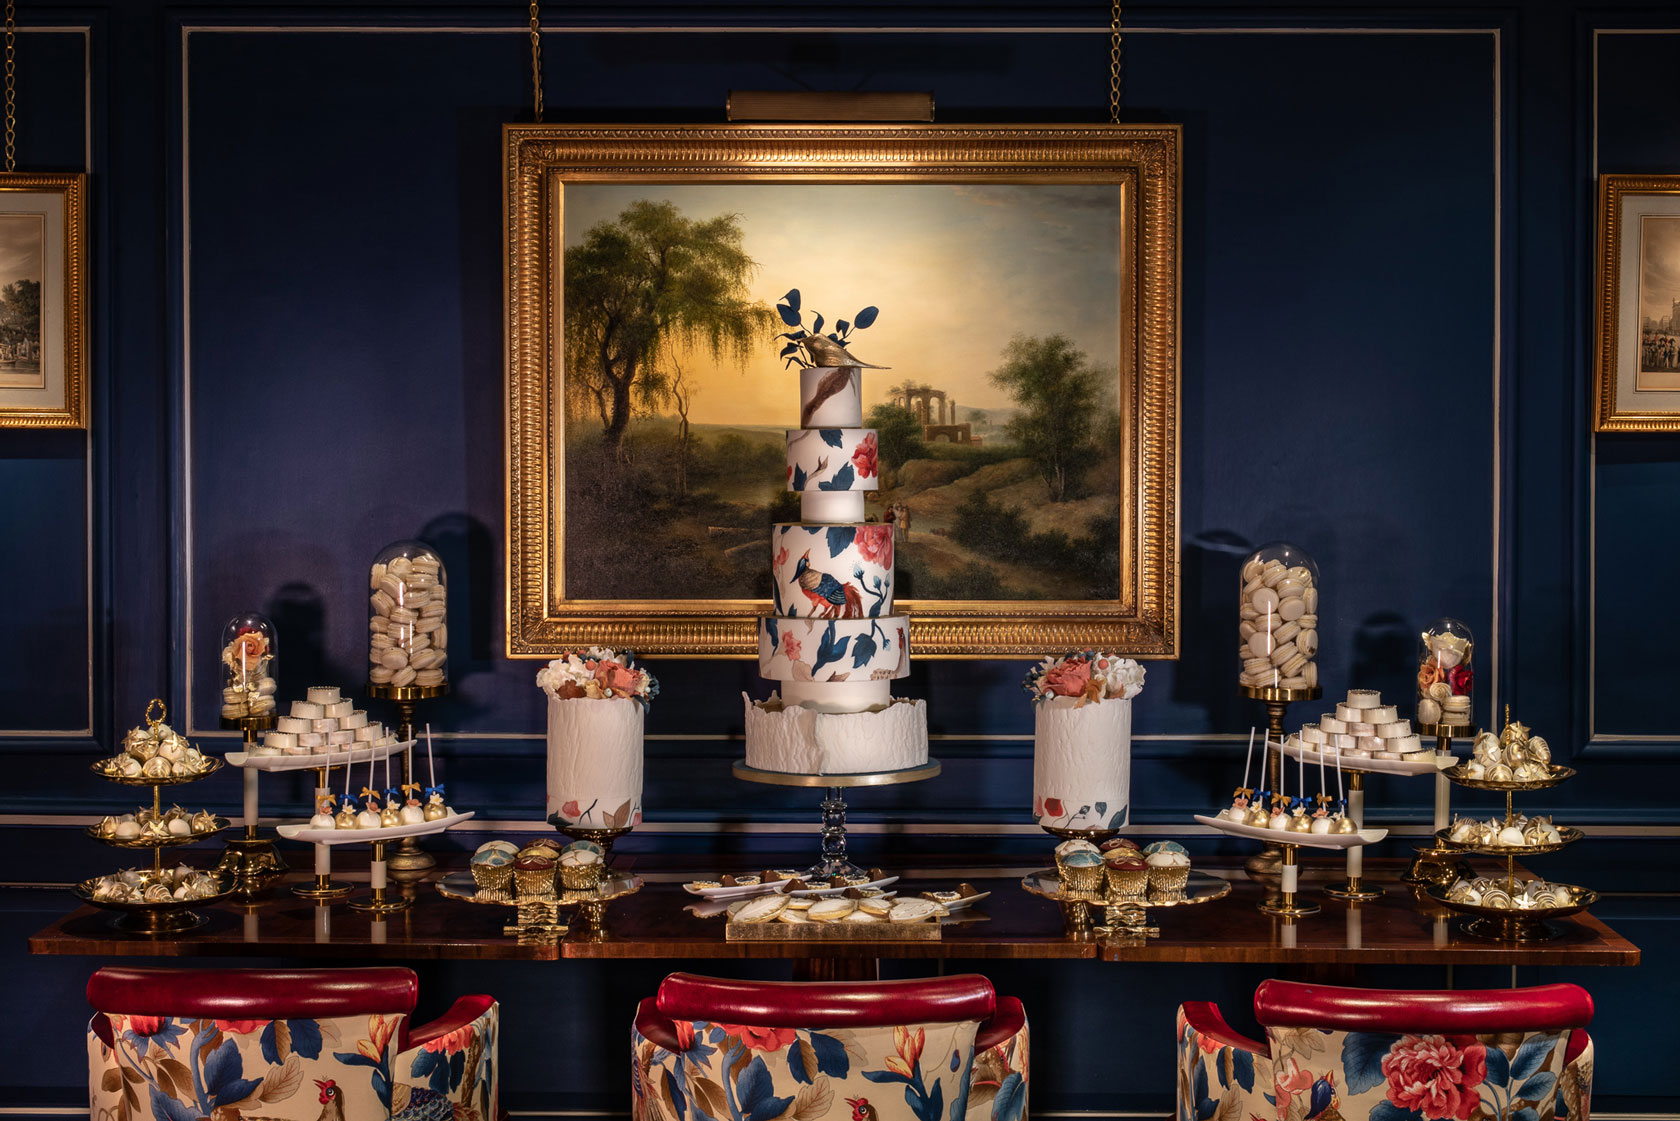 An Indulgence Bar® Dessert Table by GC Couture Inside The Stafford Hotel London With An Impressive Array Of Cakes Including A 5 Tier Centrepiece Cake Alongside Macaron Toweers, Cupcakes And Chocolate Covered Strawberries